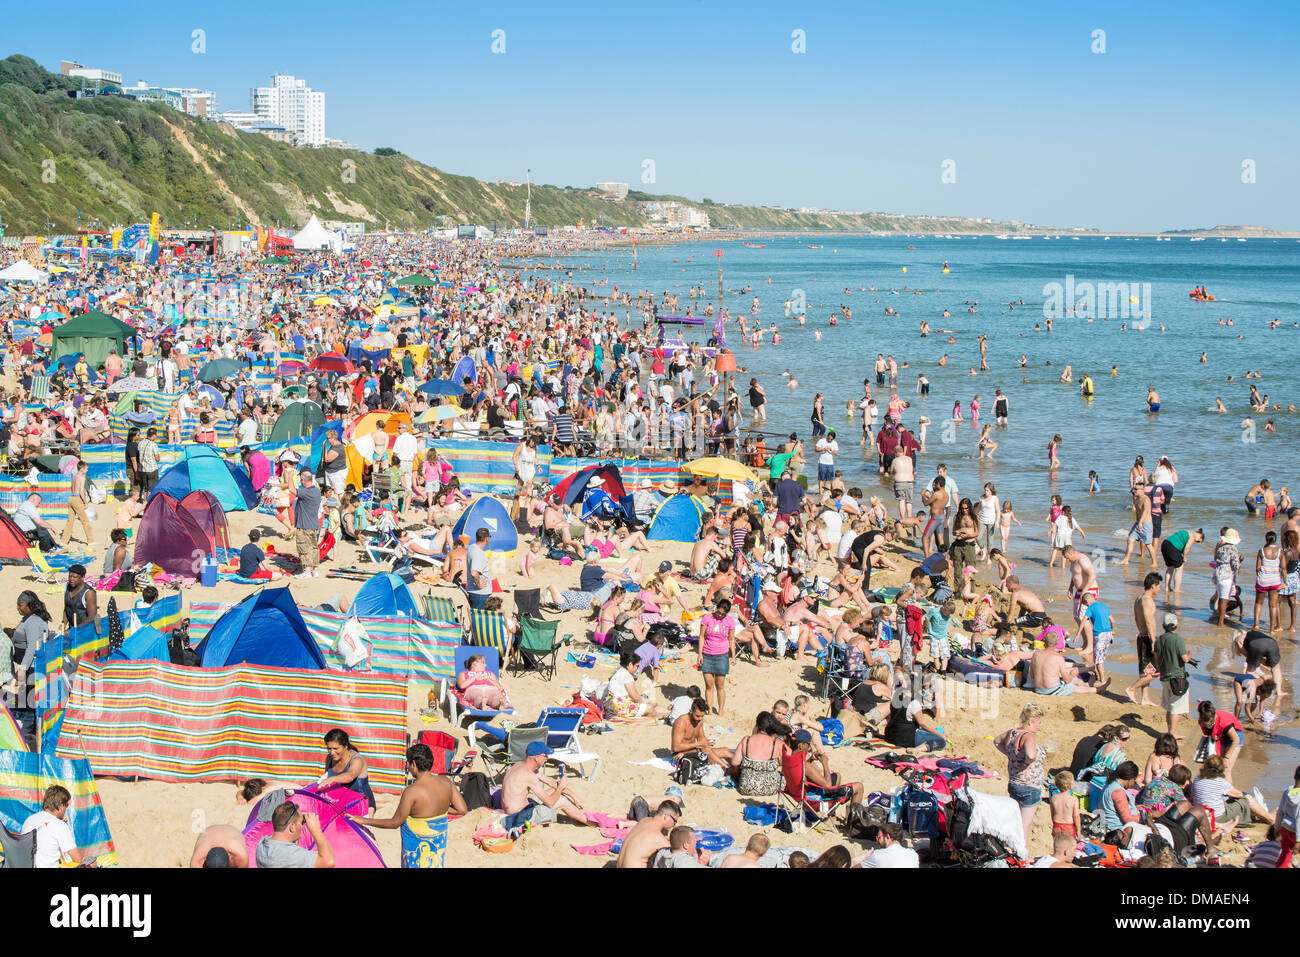 Record breaking crowd on beach at Bournemouth Air Festival 2013. - Stock Image